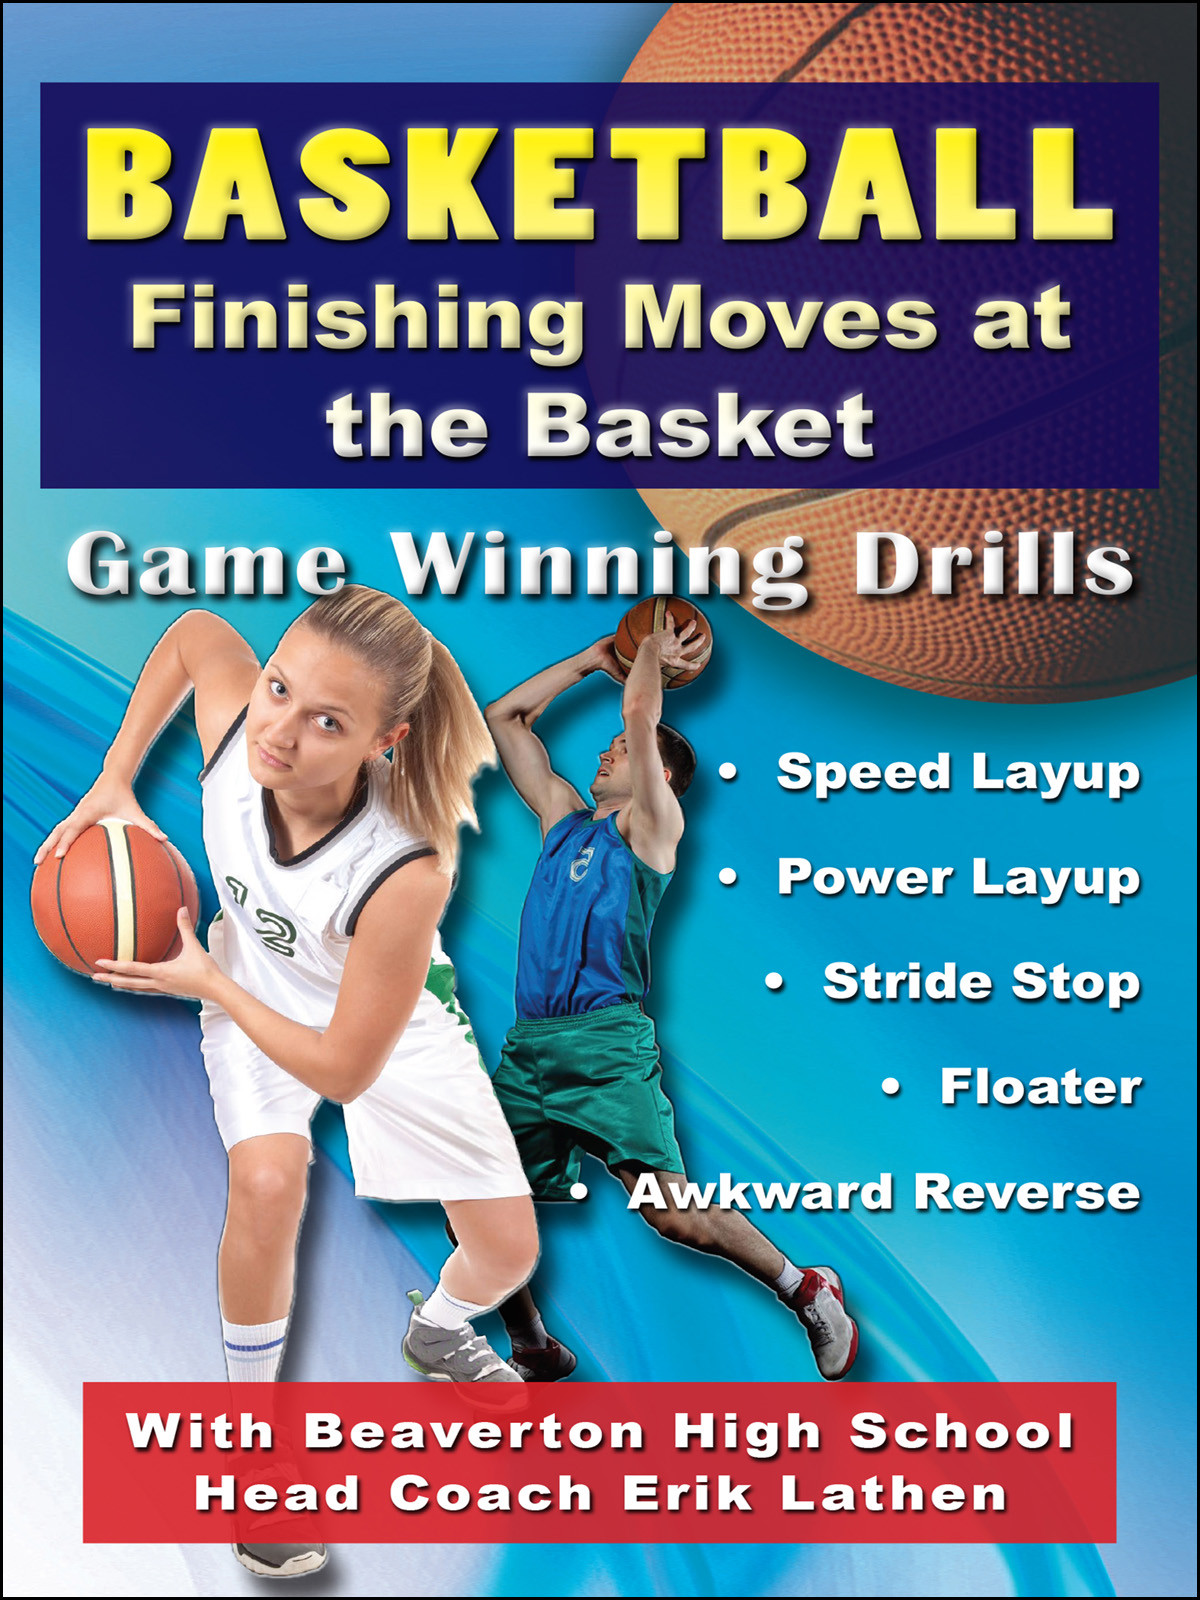 K4210 - Basketball Finishing Moves at the Basket